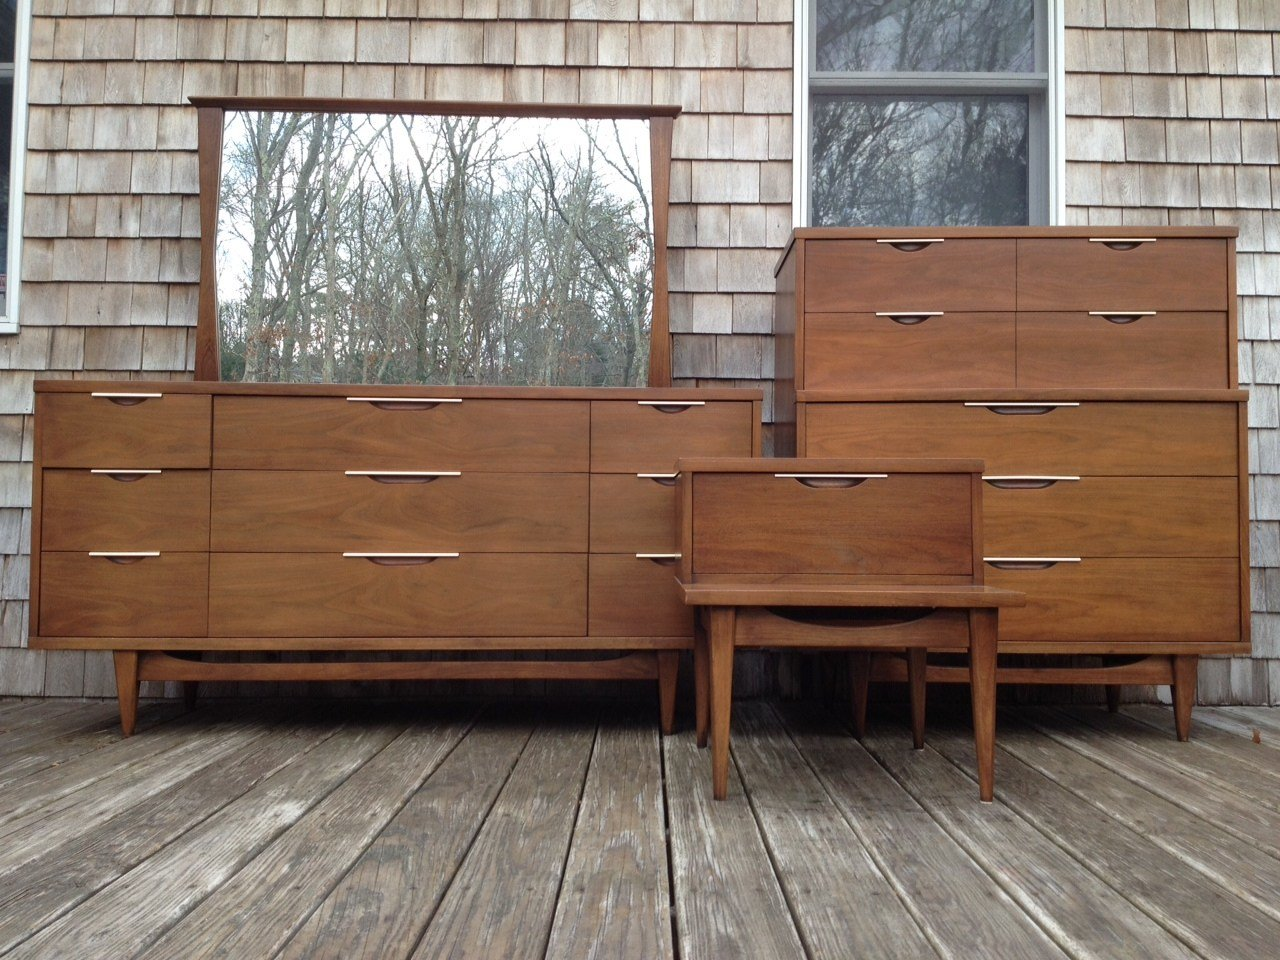 Best Kent Coffey Tableau Bedroom Set – Capemod With Pictures